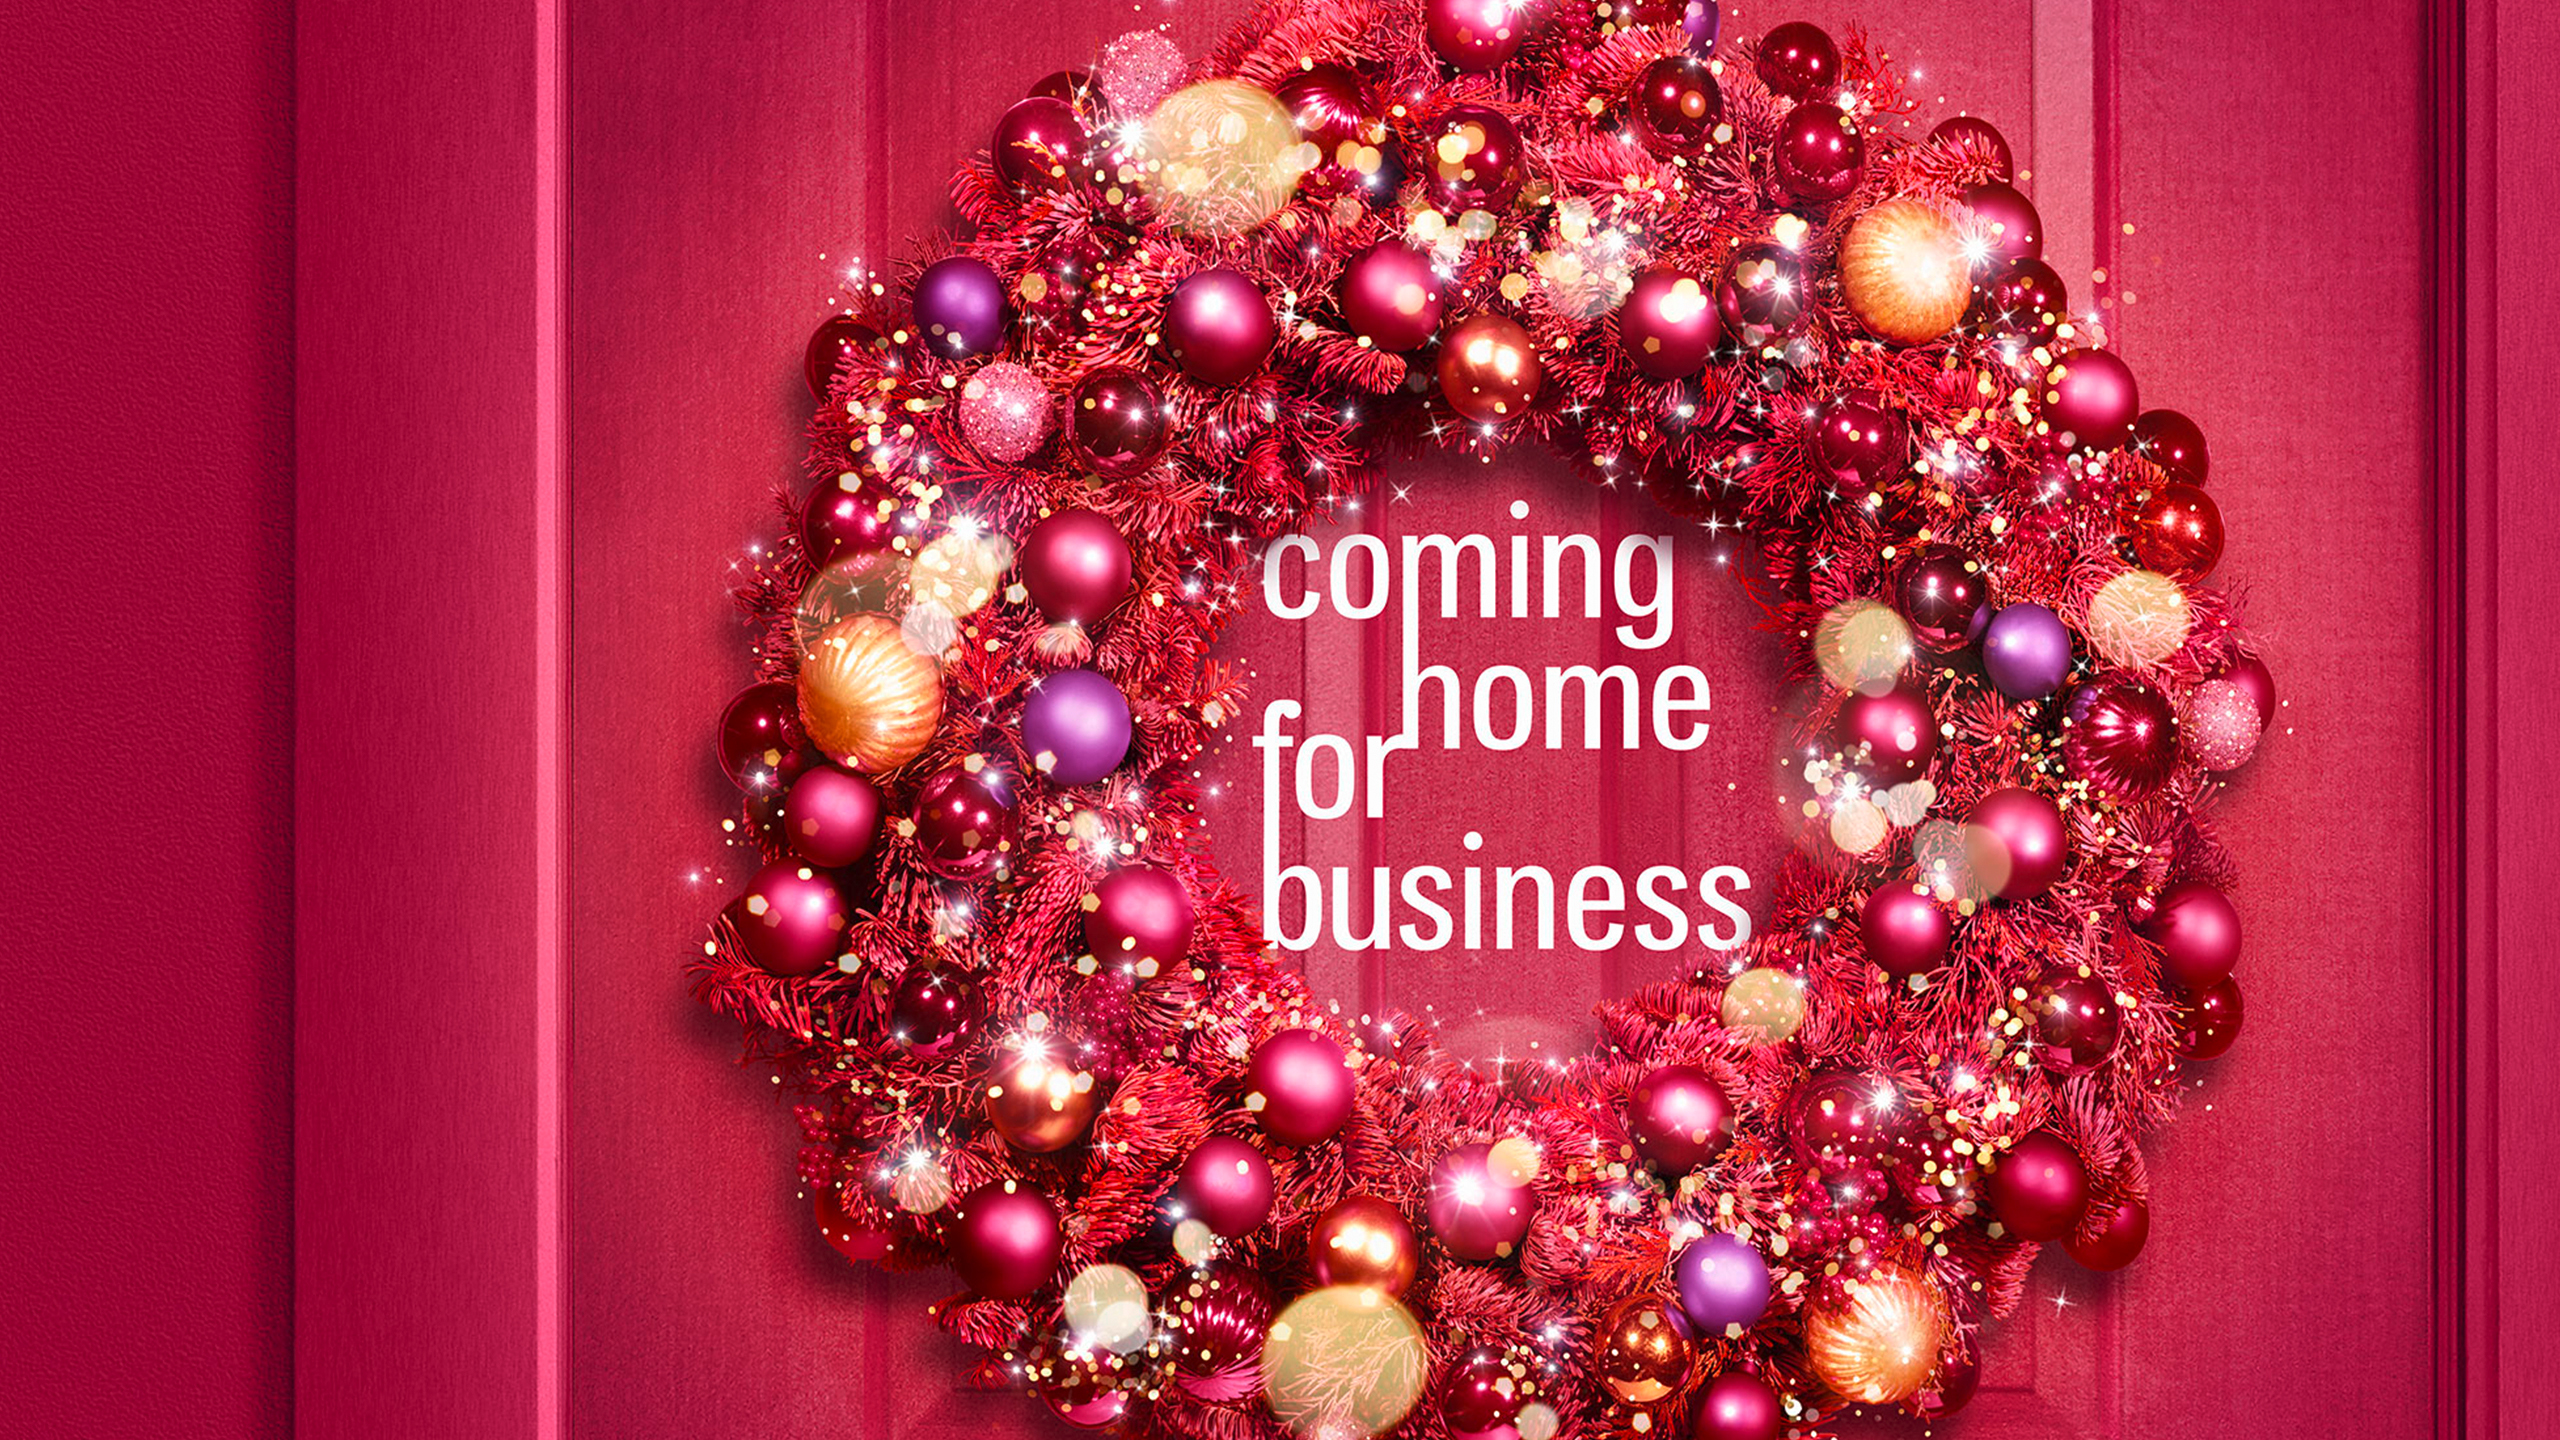 Christmasworld Keyvisual: Coming home for business